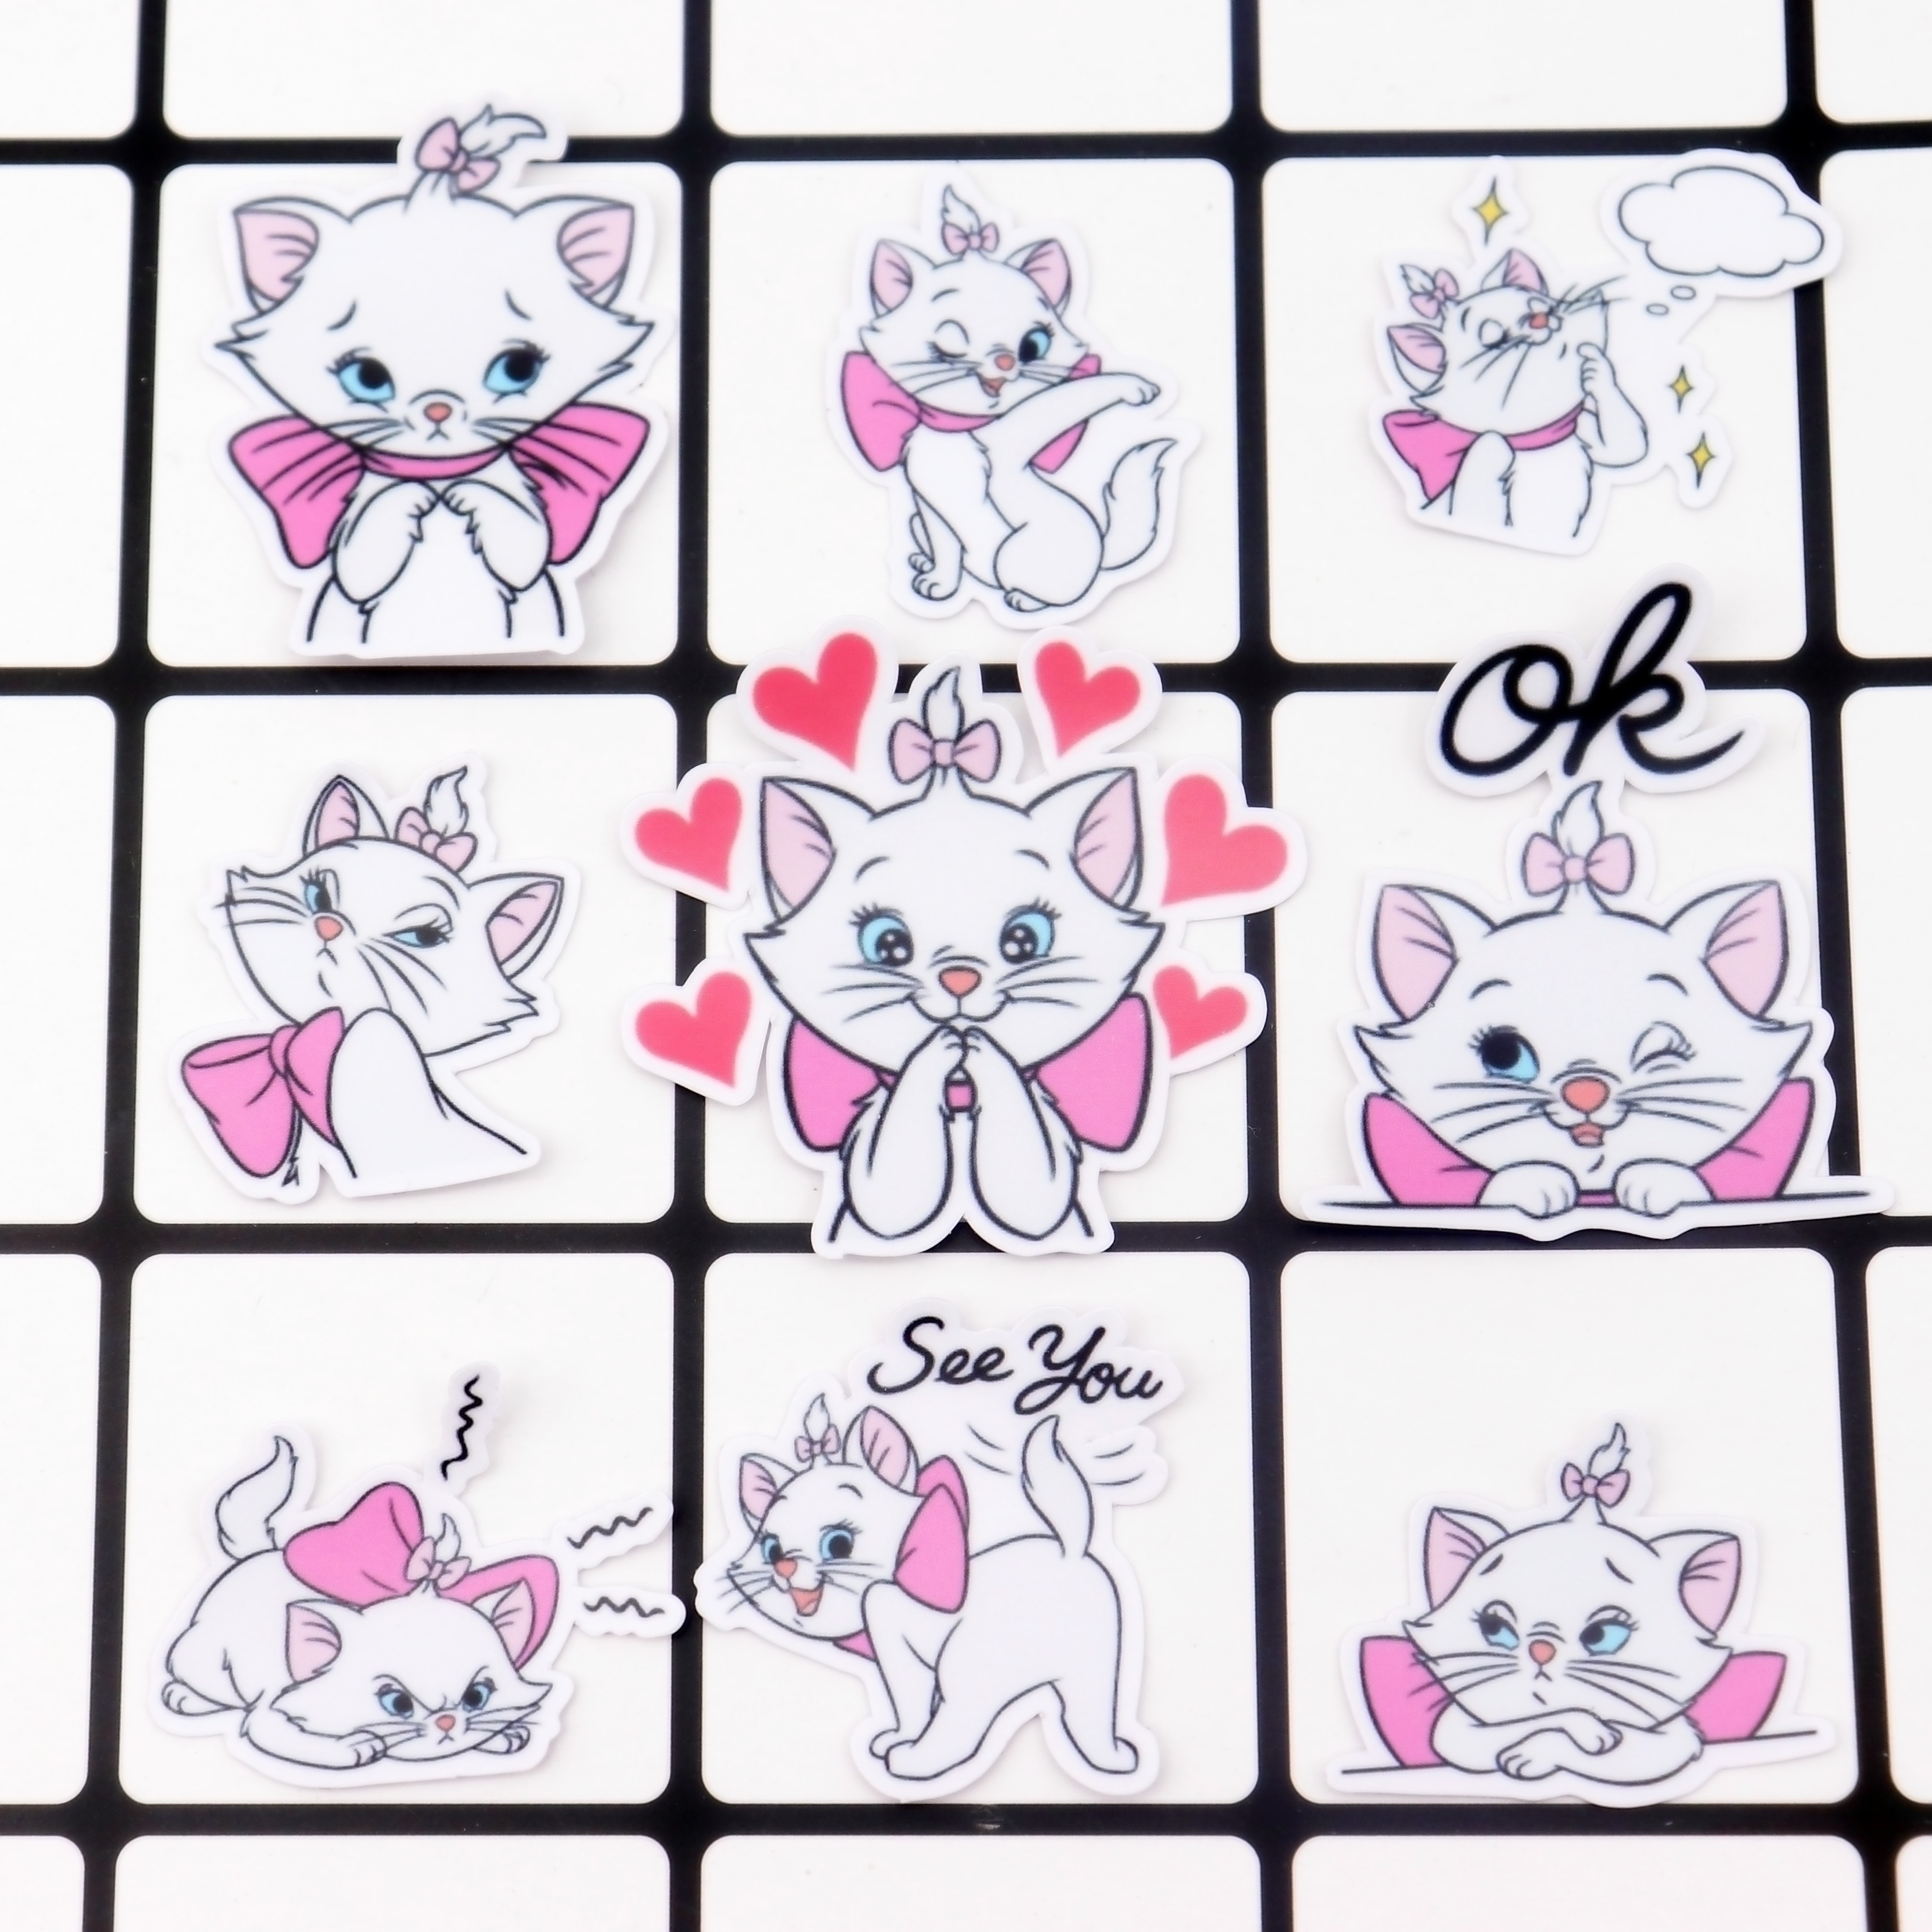 40pcs Creative Kawaii Self-made Mary Cat Stickers/scrapbooking Stickers /decorative /DIY Photo Albums Waterproof/Notebook Diary